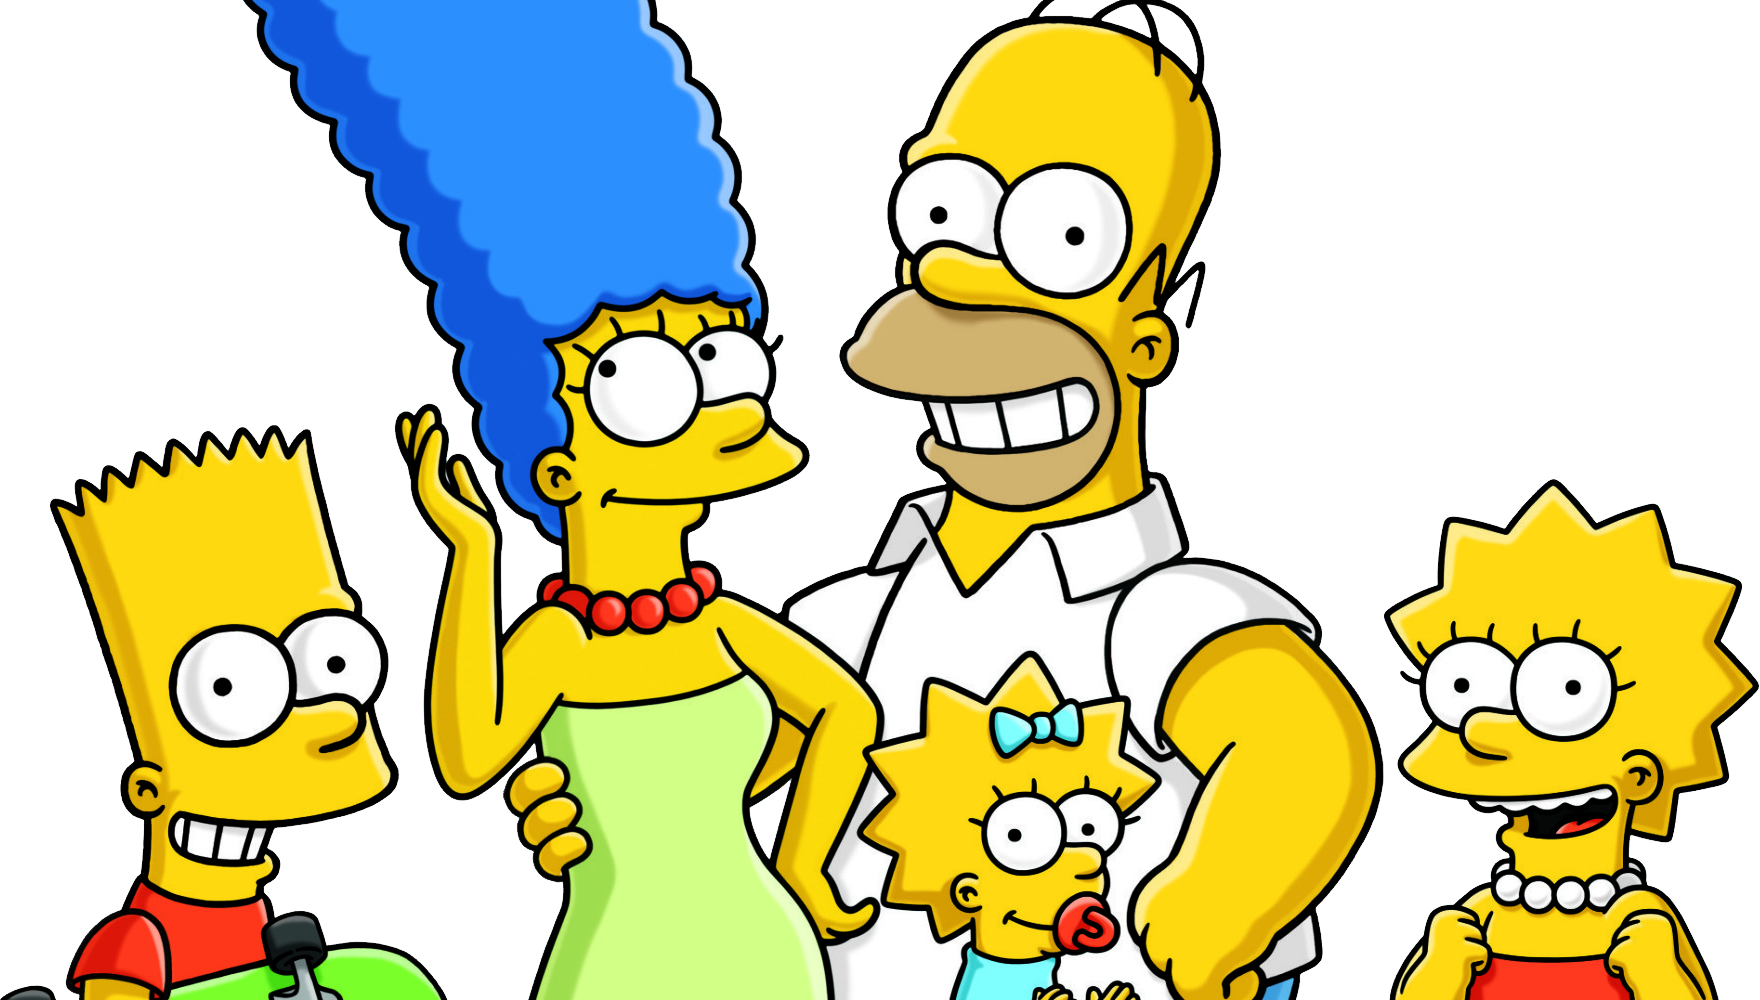 The simpsons png. Images free download homer